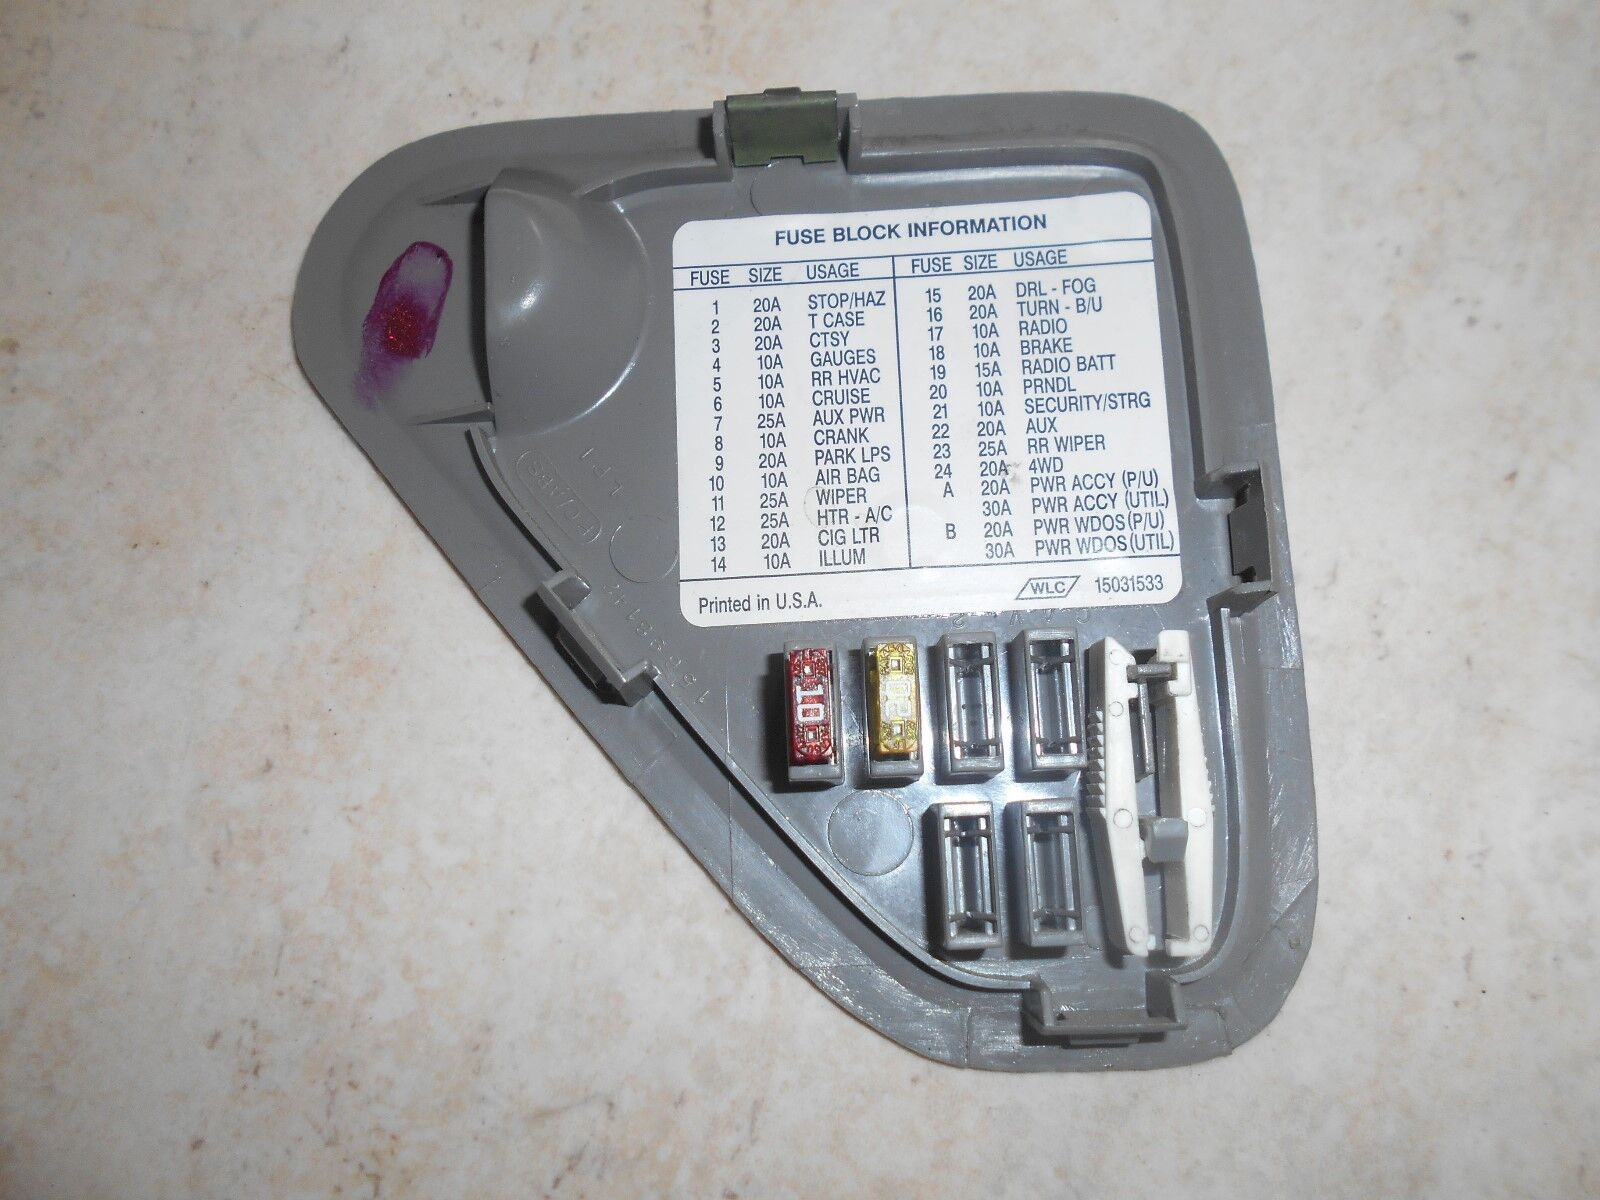 Used 1998 Chevrolet Tahoe Interior Door Panels And Parts For Sale 98 Chevy Fuse Box 1995 1999 Gmc Ck Truck Yukon Suburban Panel Cover Gray Color